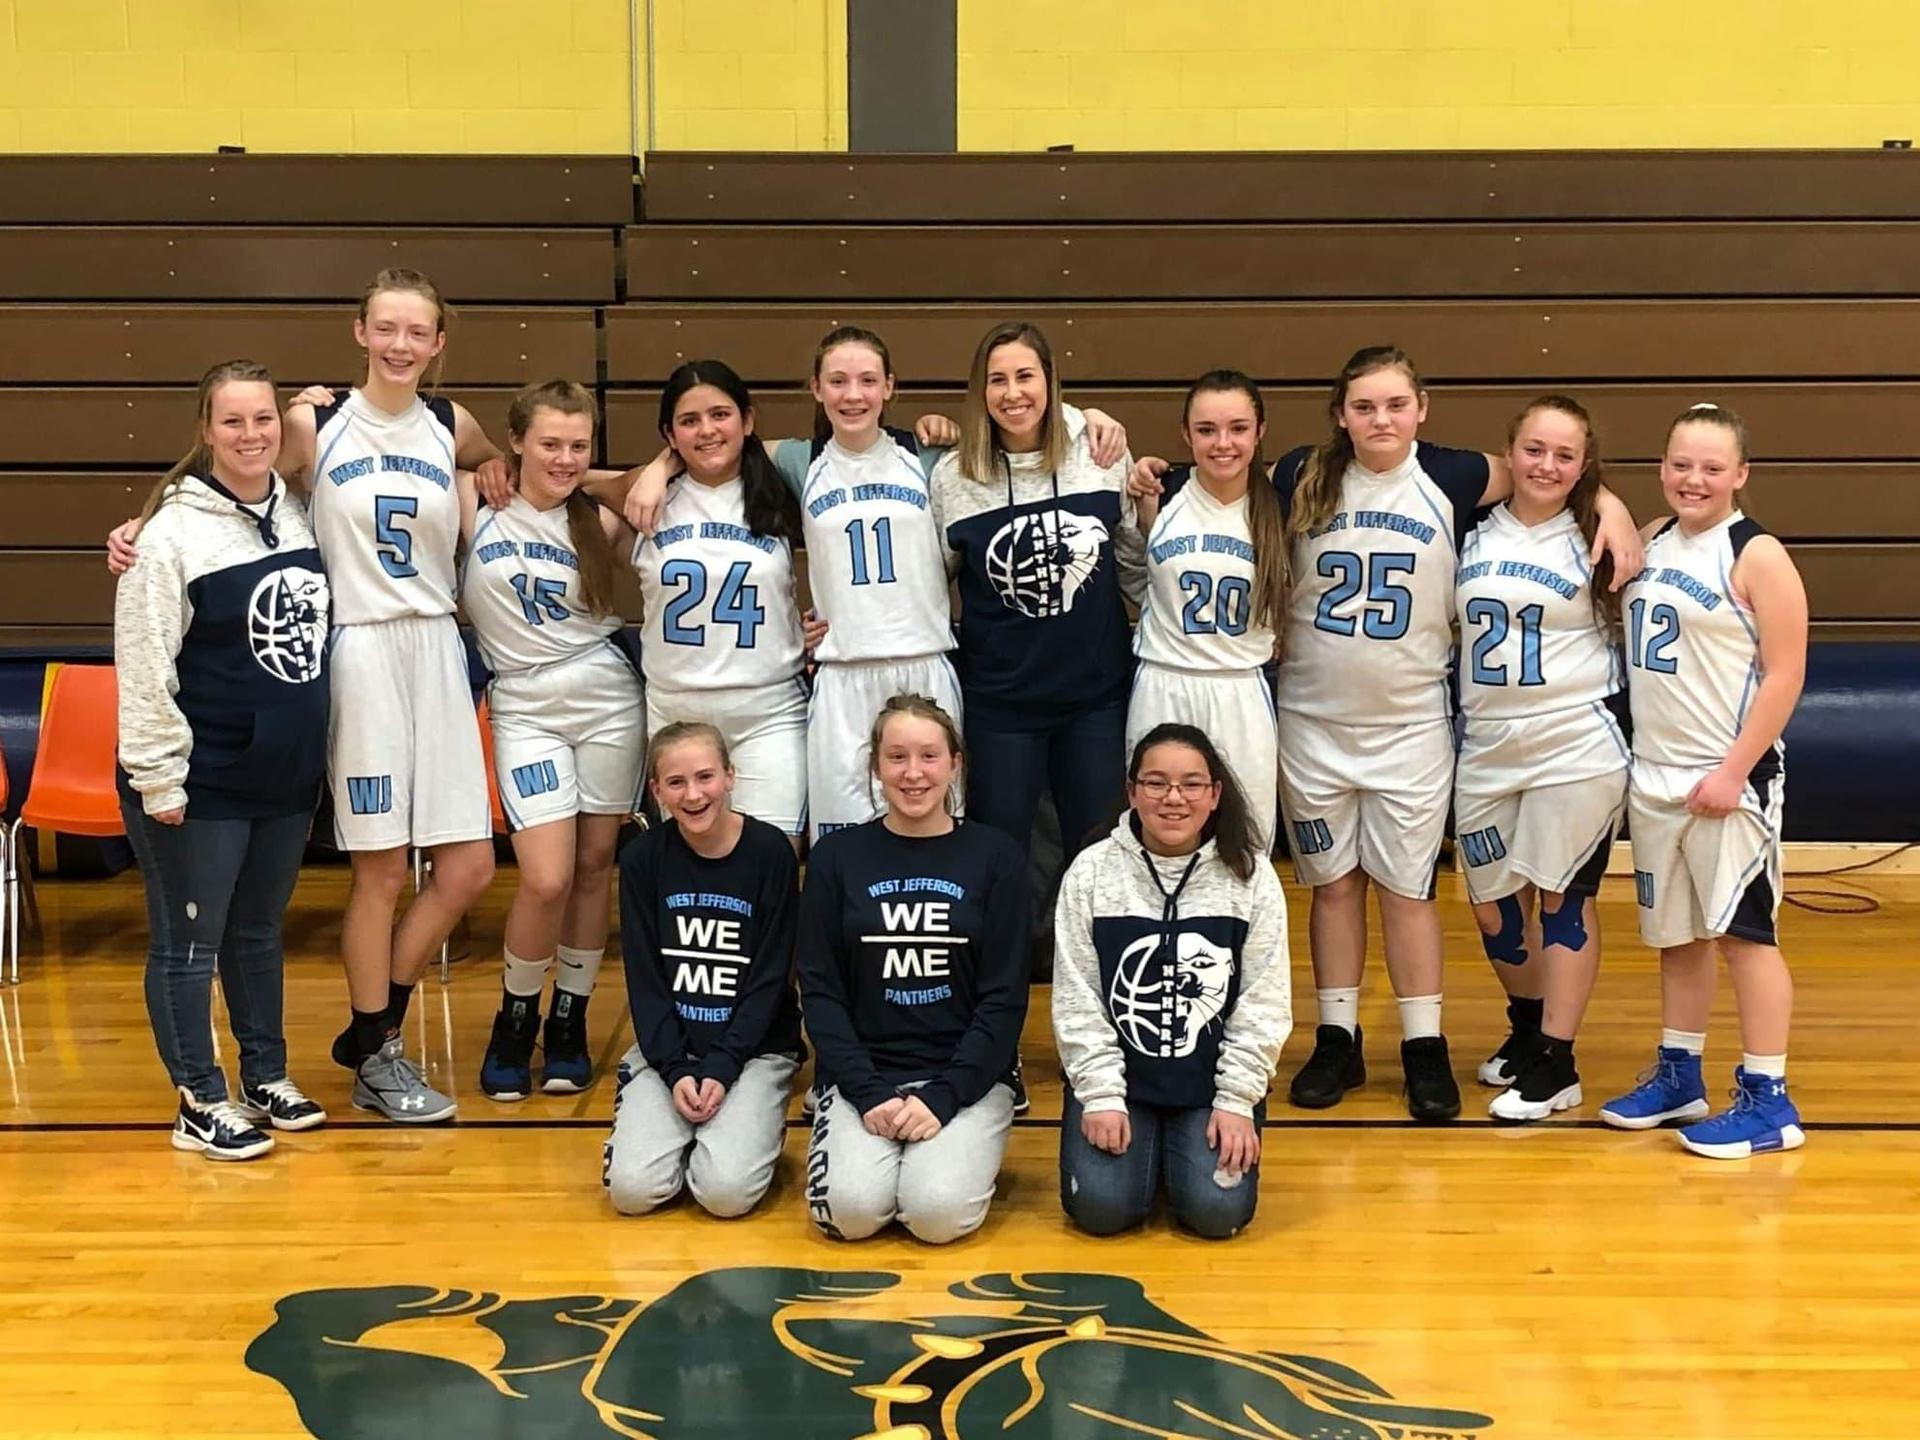 8th Grade Girls Basketball Team